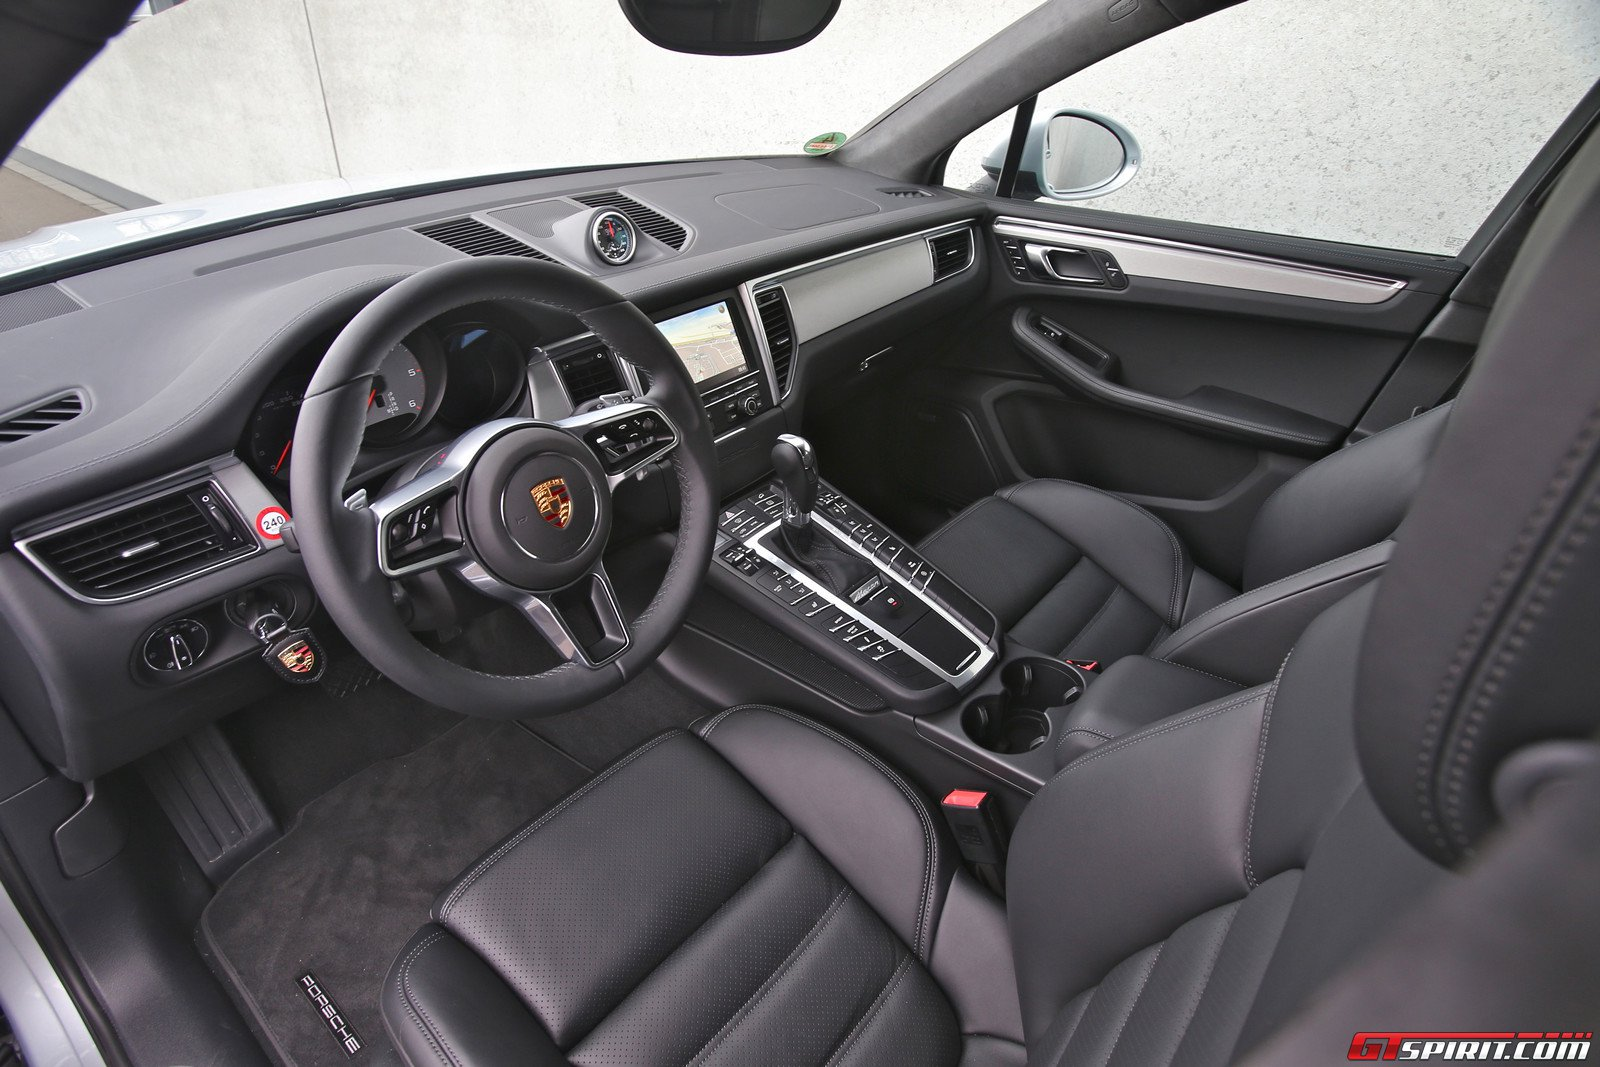 2014 porsche macan interior images galleries with a bite. Black Bedroom Furniture Sets. Home Design Ideas